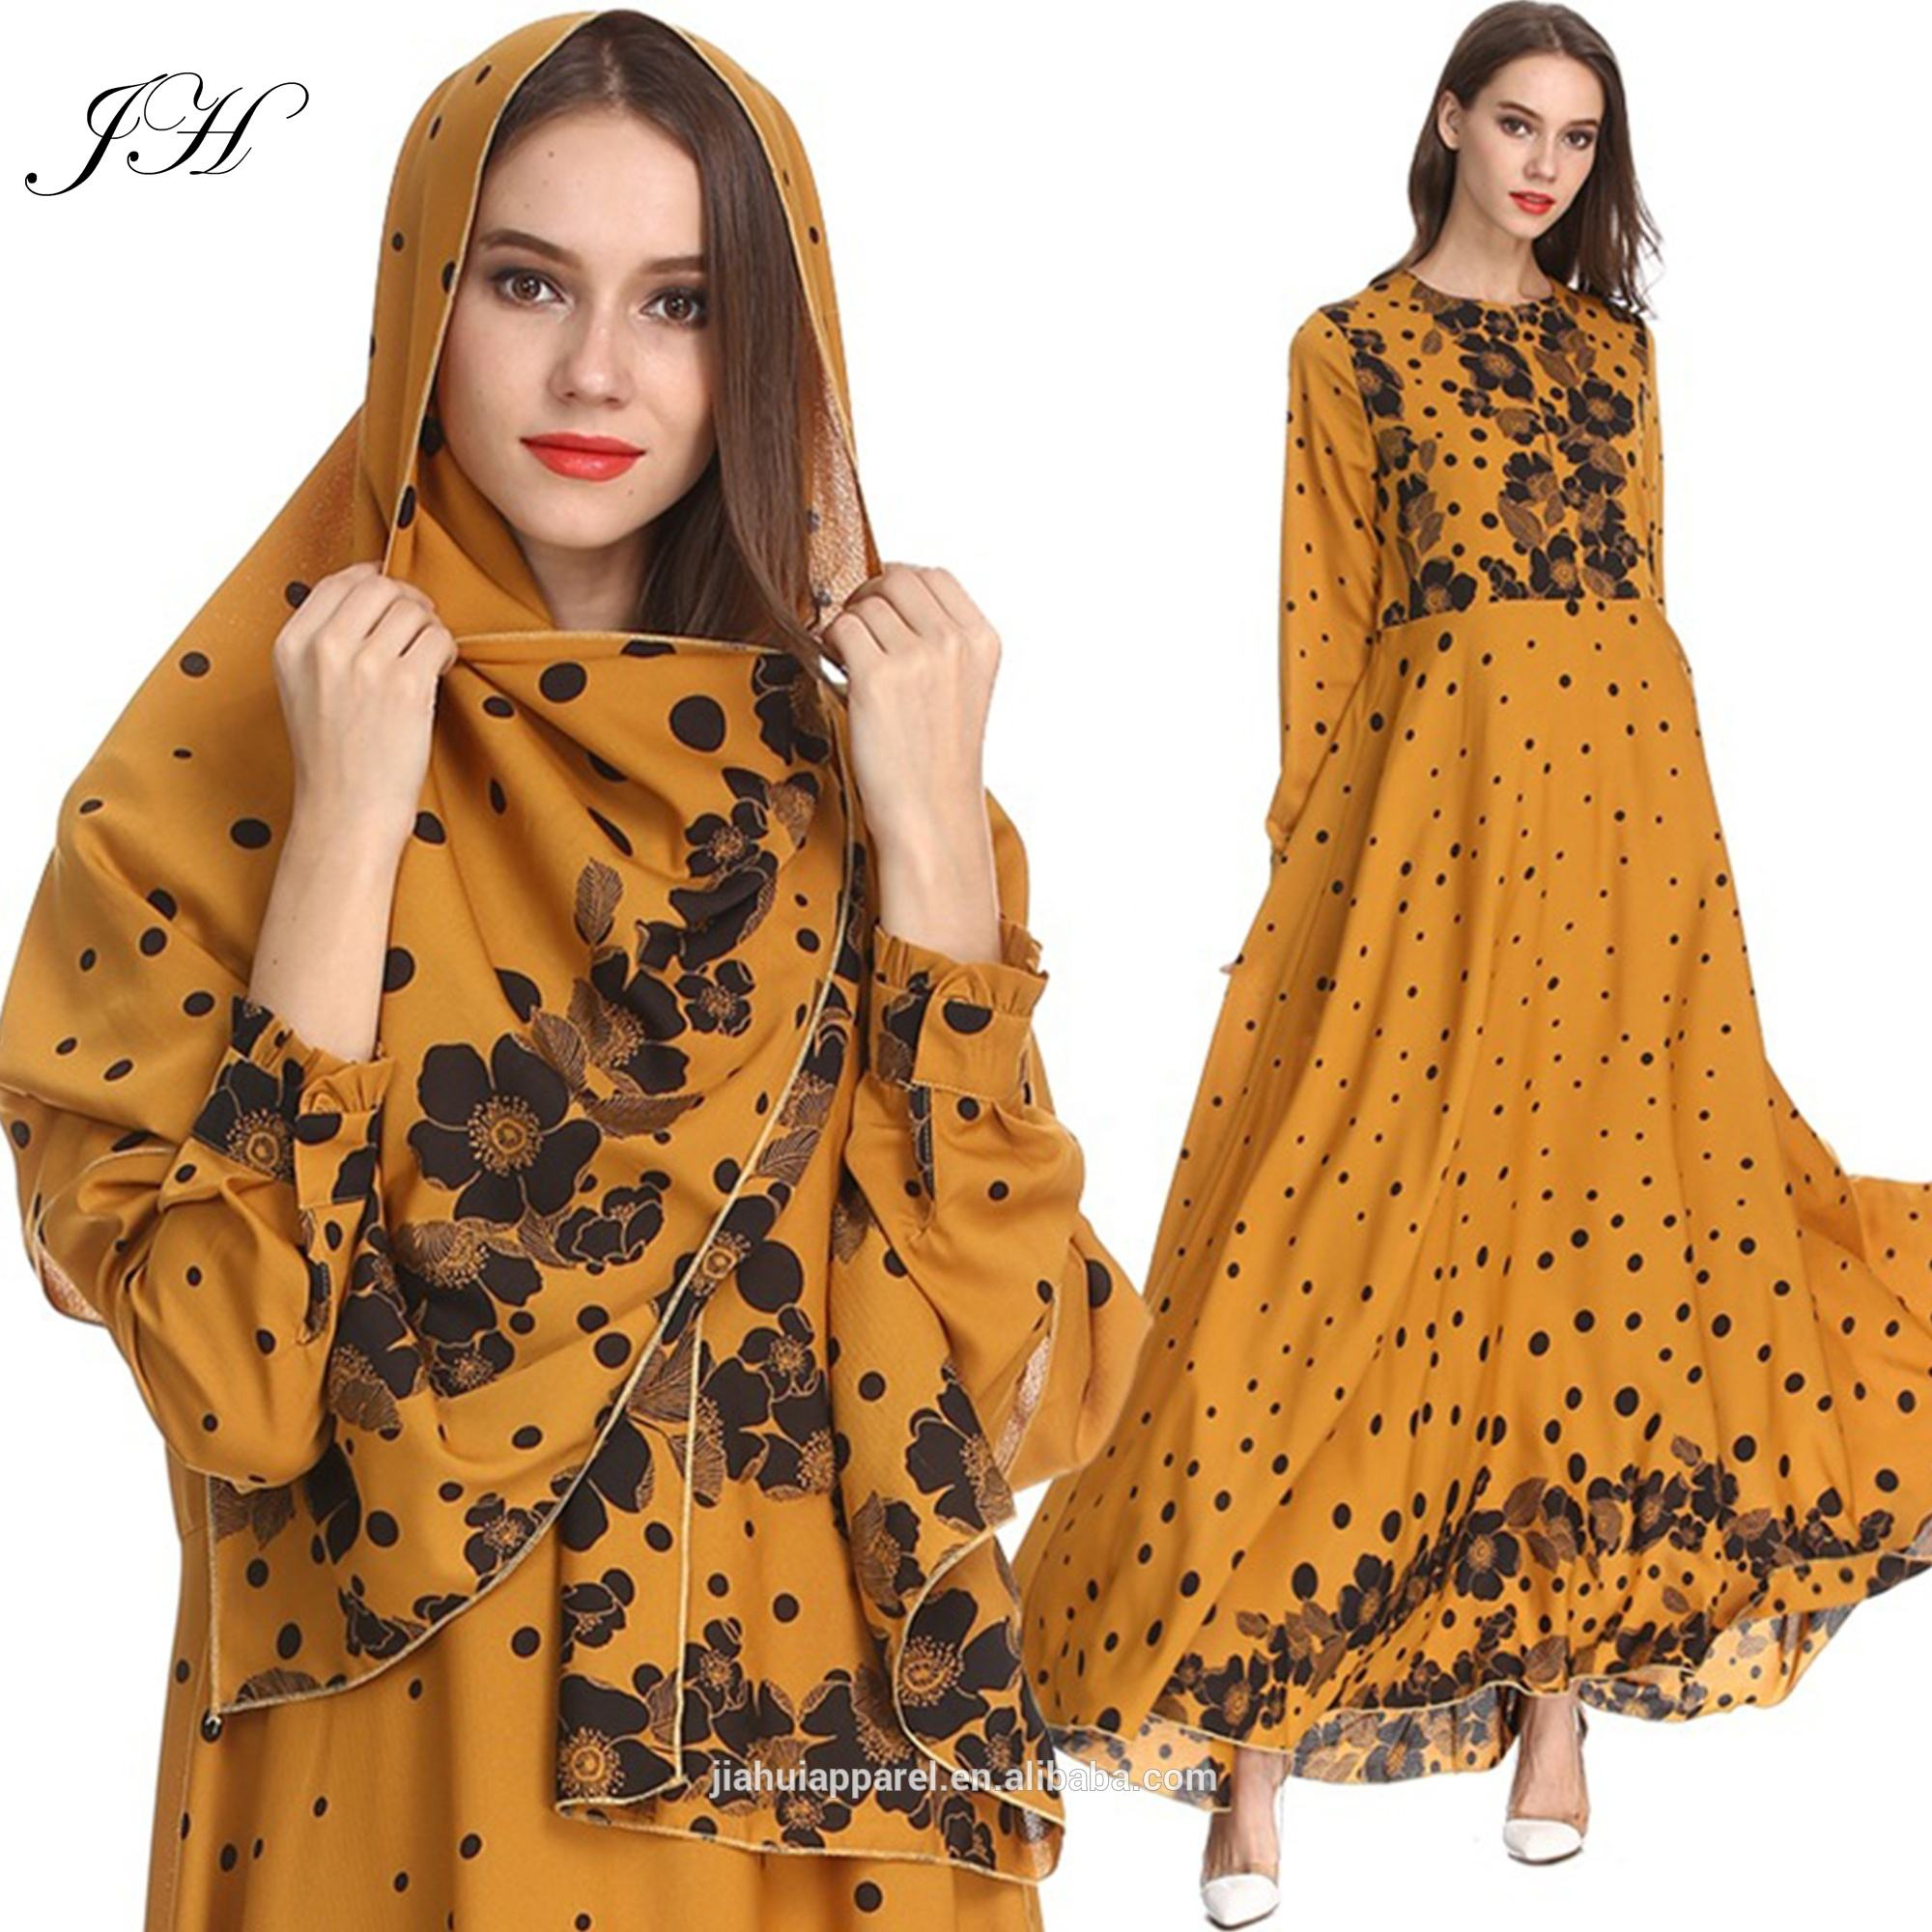 2019 Latest Design Kaftan Abaya Jilbab Islamic Clothing Floral Dot Printed Long Sleeve Vintage Maxi Muslim DressとHijab